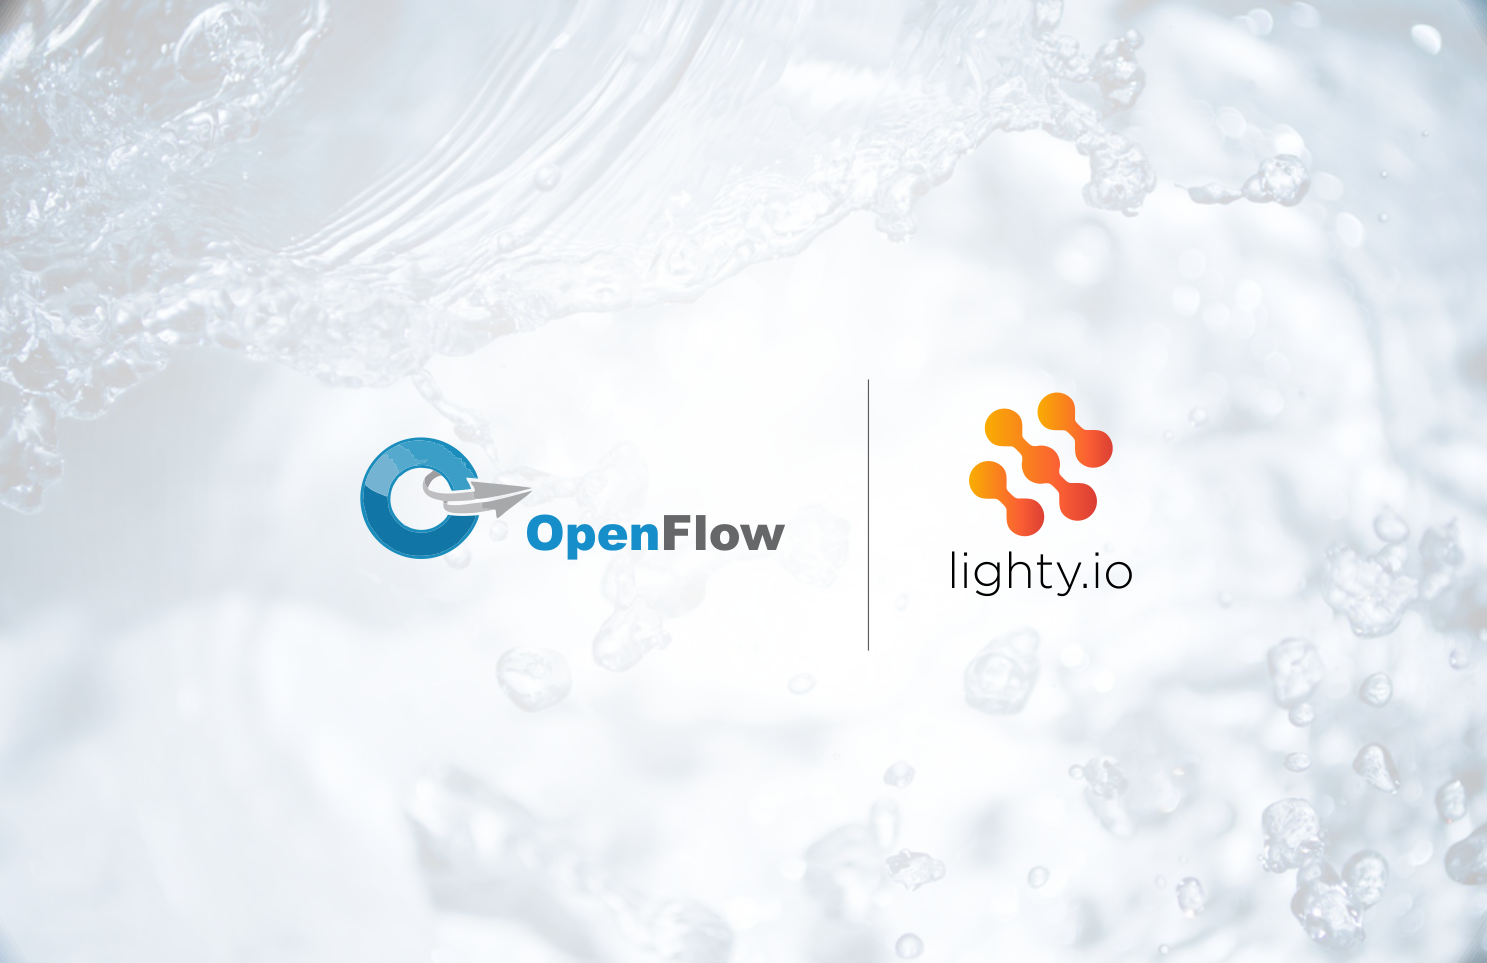 openflow-and-lighty